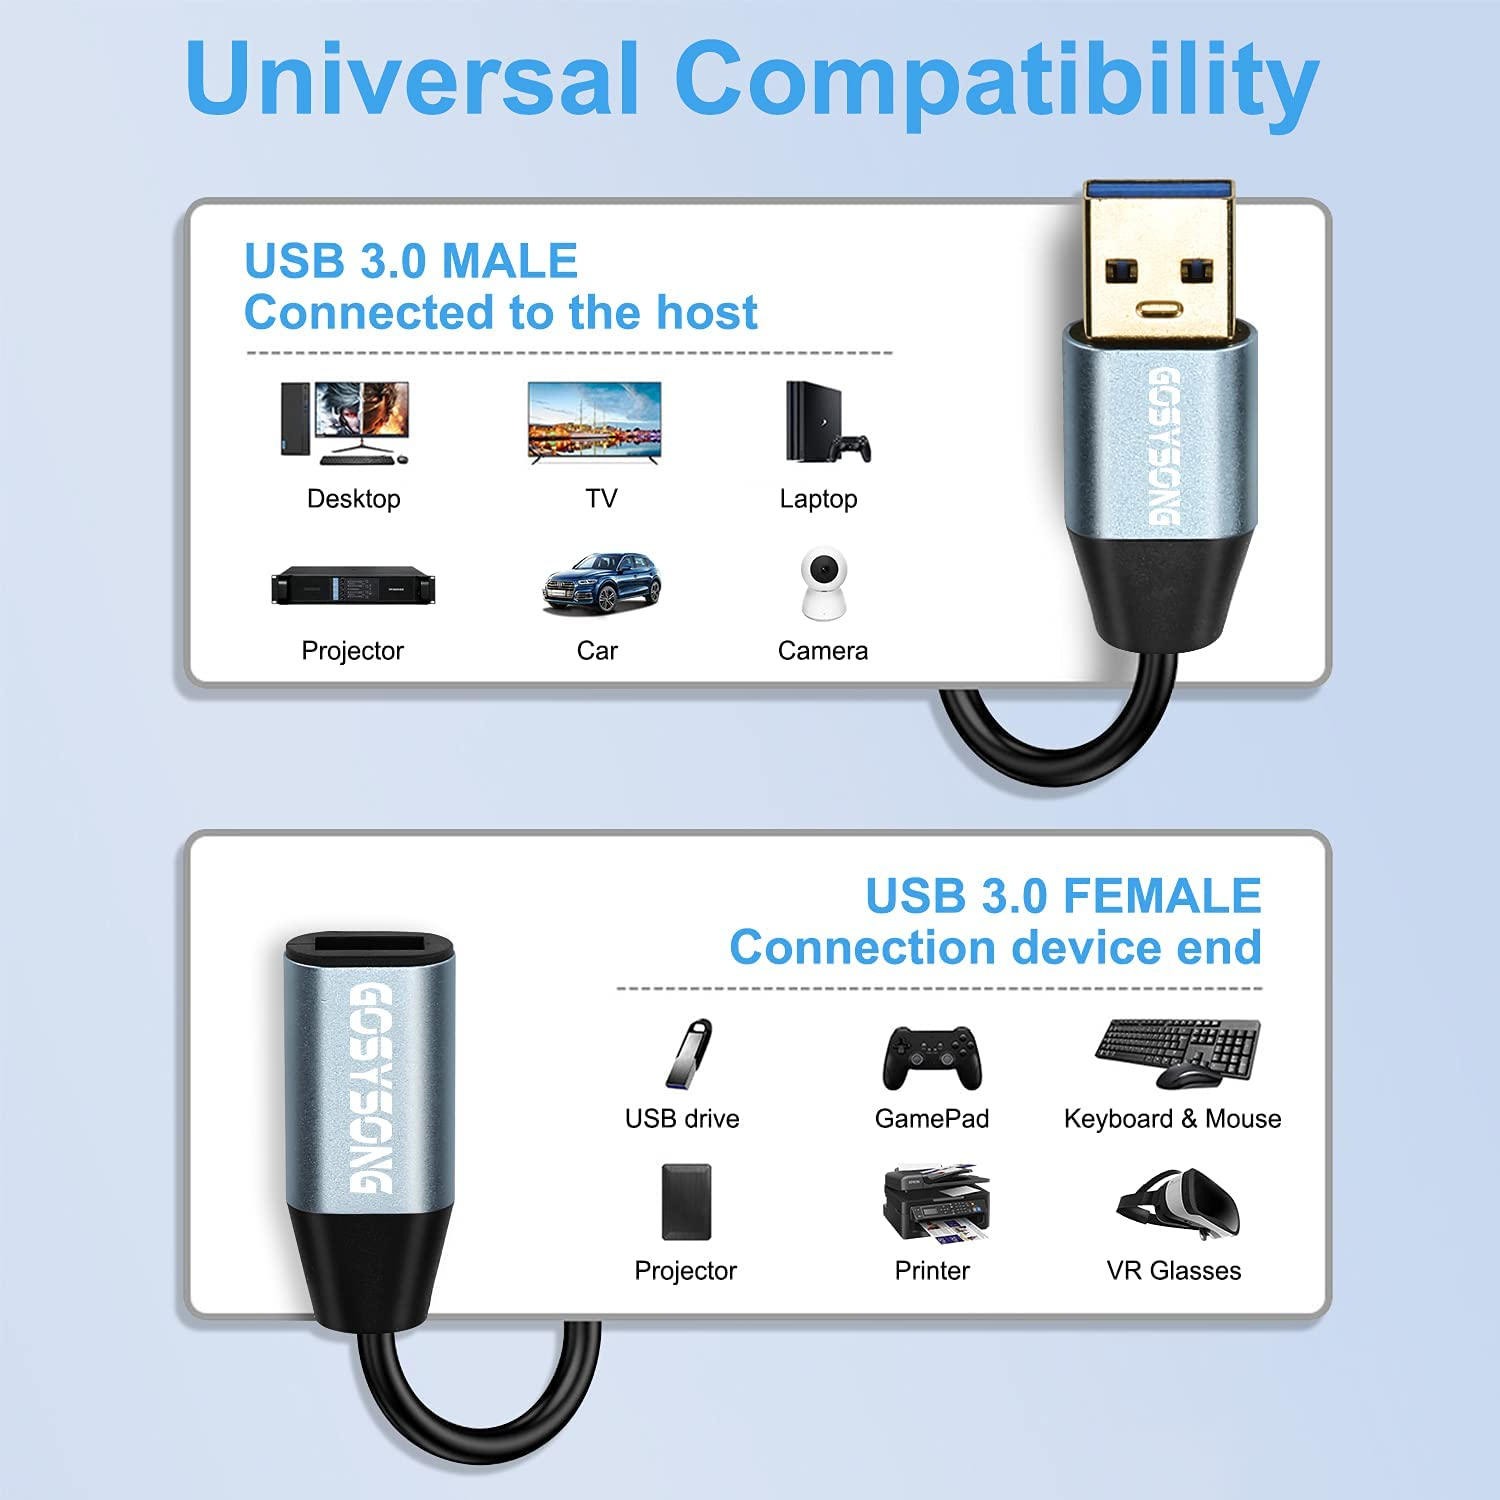 GOSYSONG USB 3.0 Extension Cable 3ft – Male to Female Extender Cord, USB Extension Cable for USB Flash Drive, Card Reader, Hard Drive, Keyboard, Playstation, Xbox, VR, Printer, Camera, Laptop